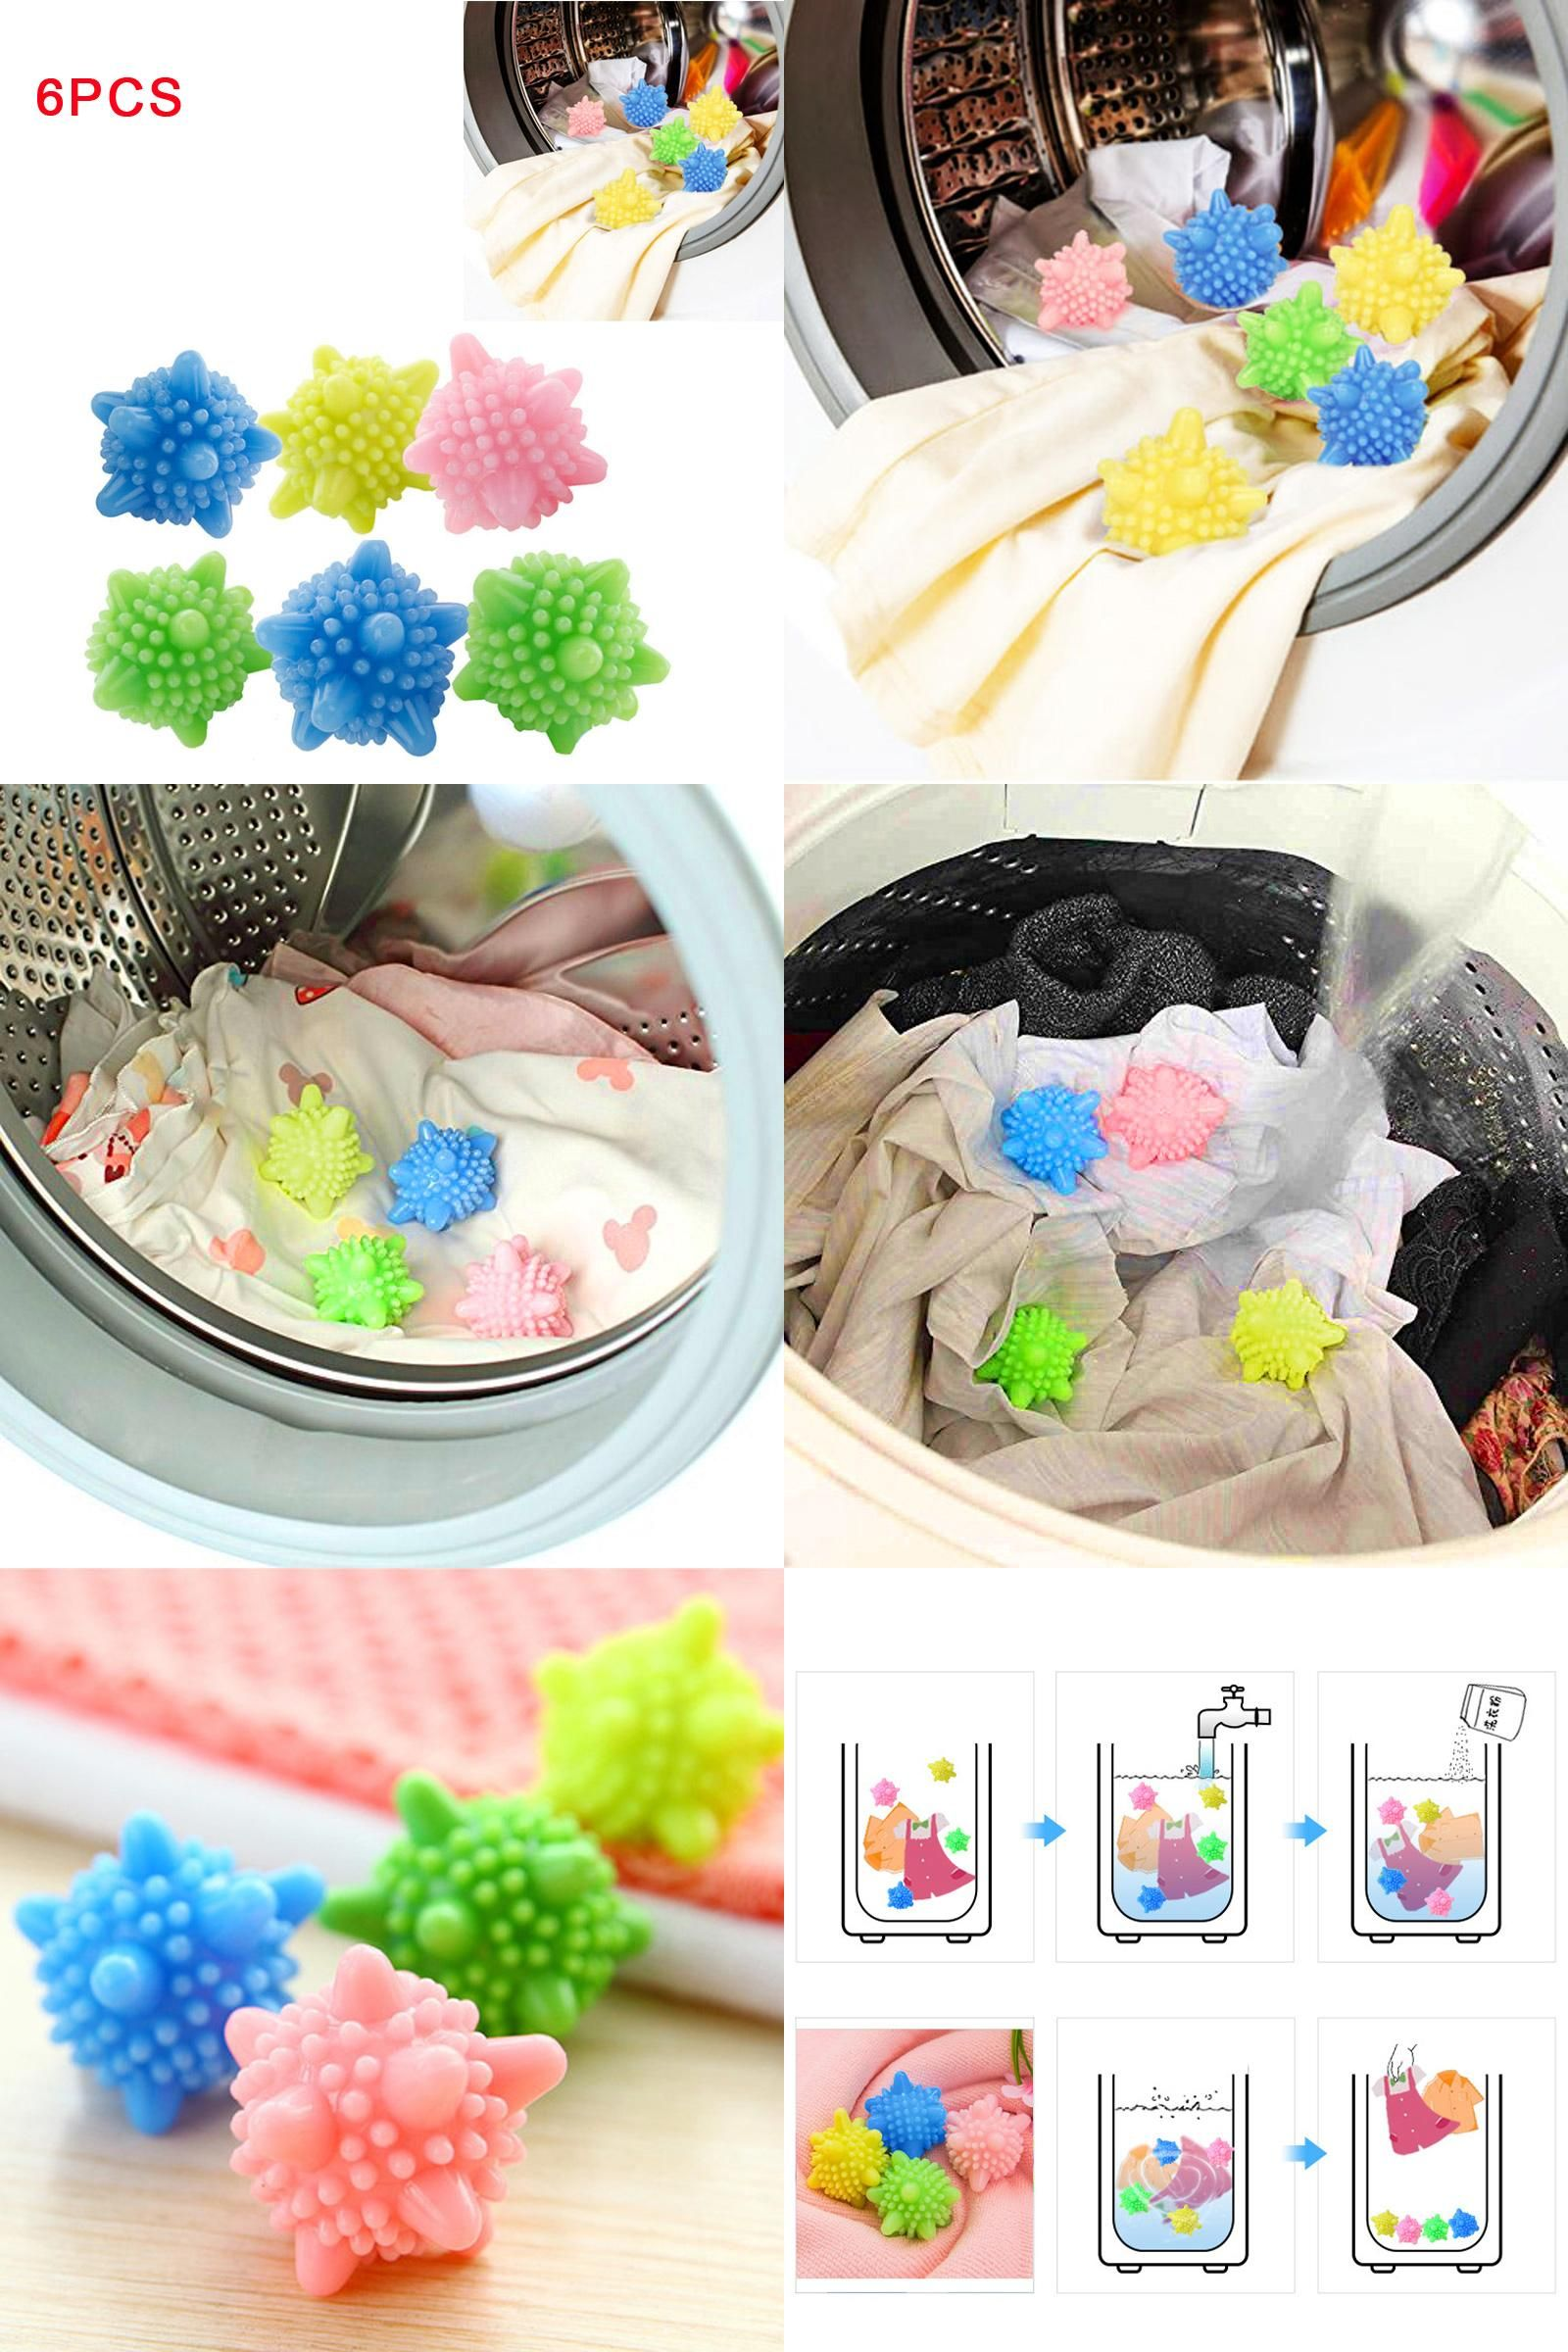 Visit To Buy 6pcs Colored Detergent Winding Preventing Cleaning